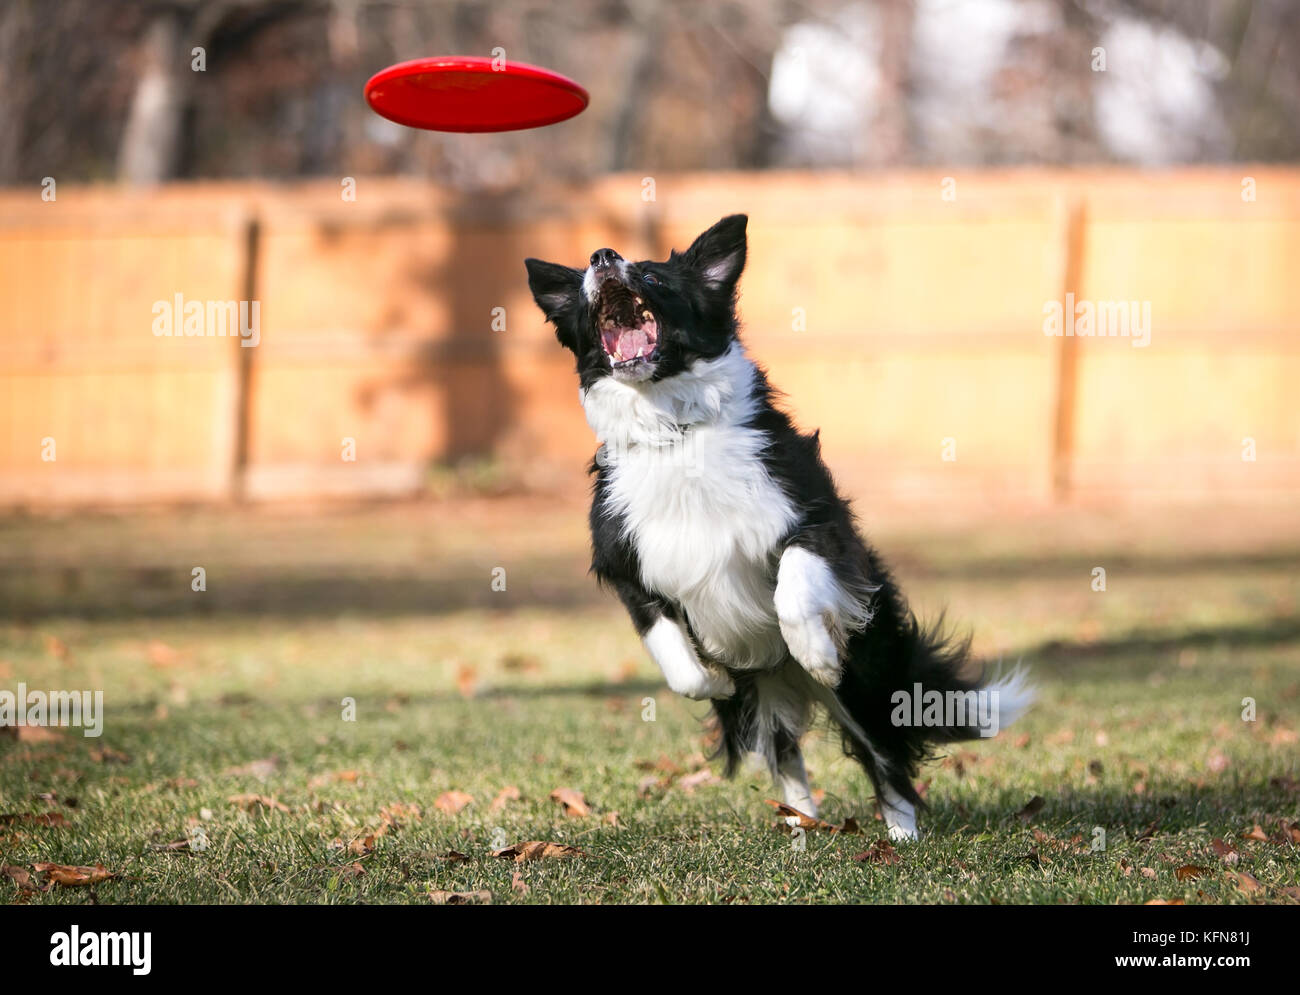 A Border Collie dog leaping to catch a flying disc - Stock Image